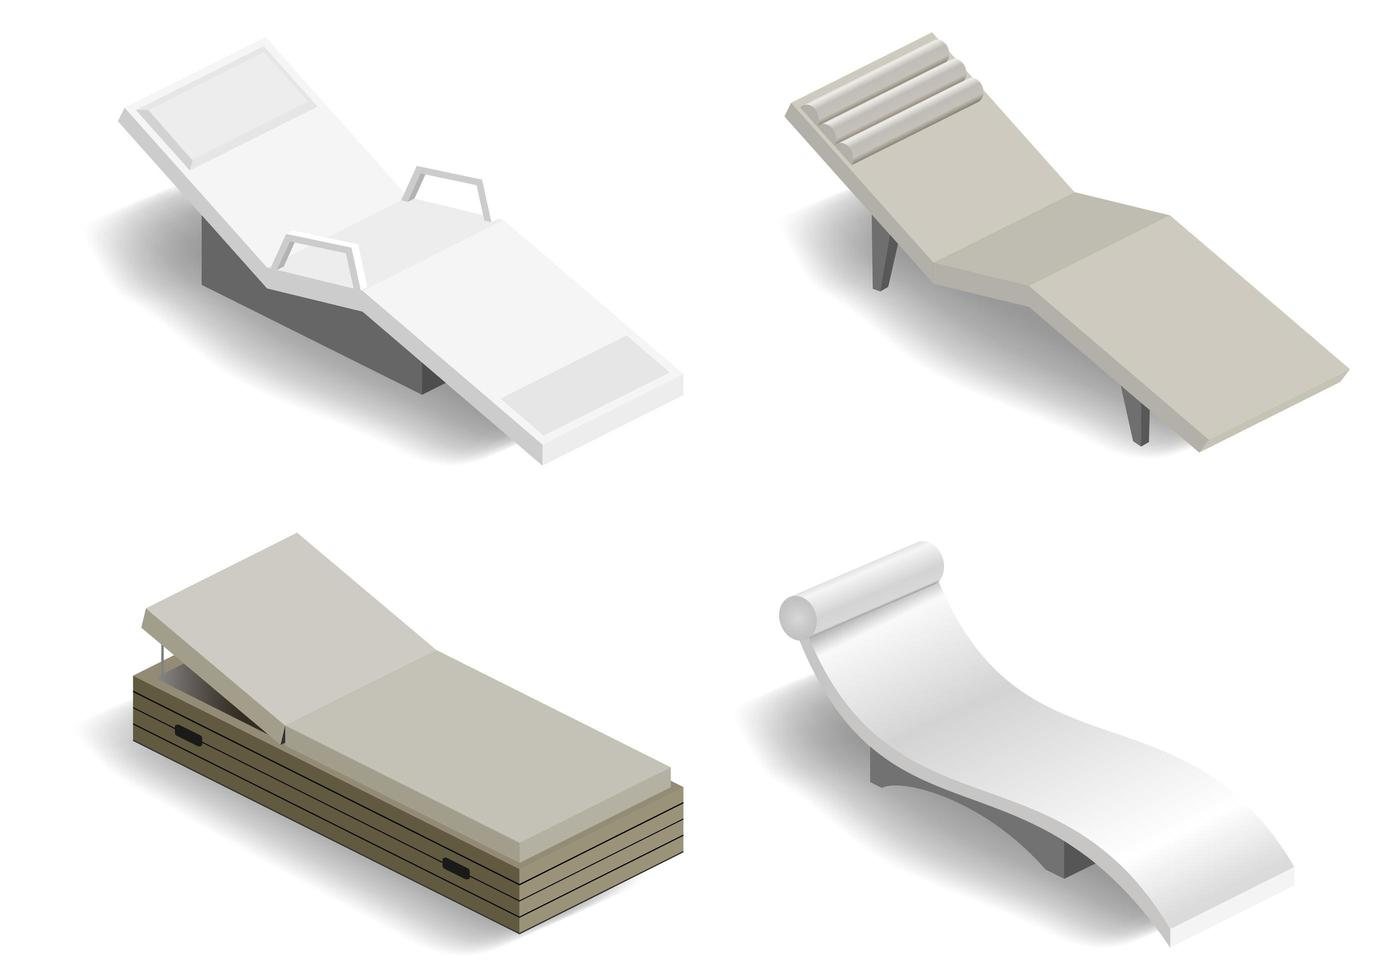 Set of modern loungers for spa or pool vector